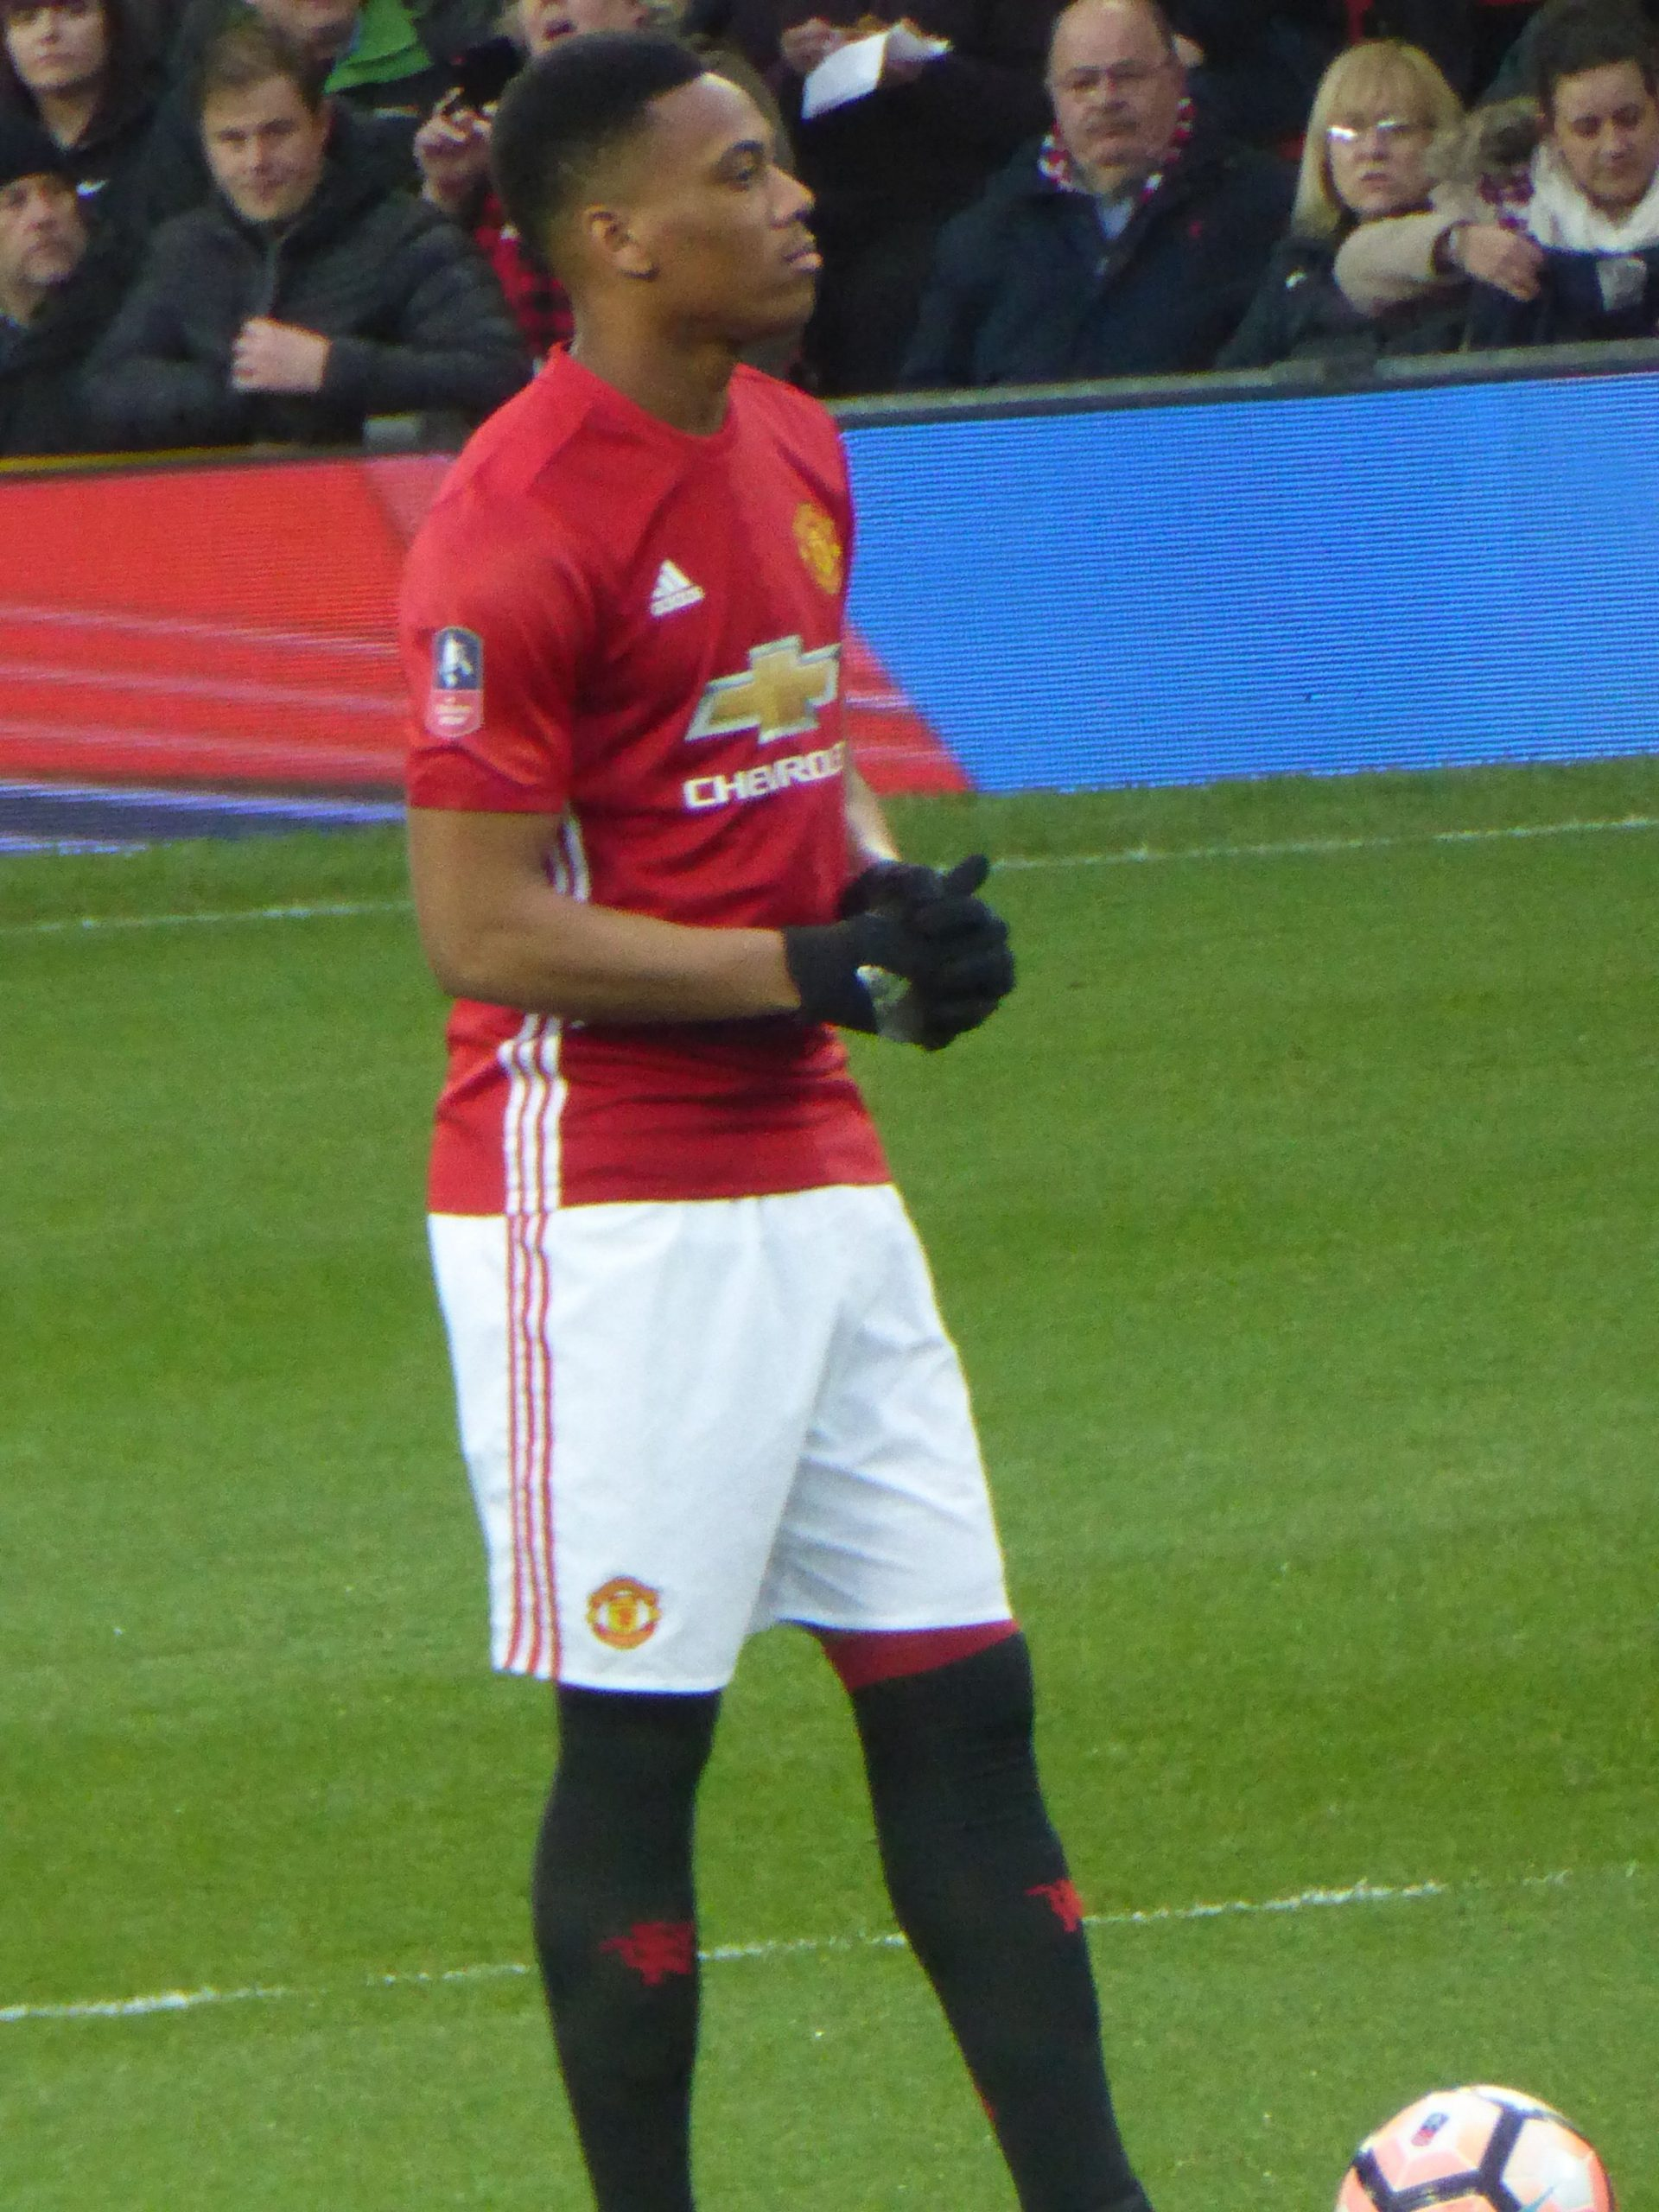 Anthony Martial in his Manchester United Kit on the field against Liverpool